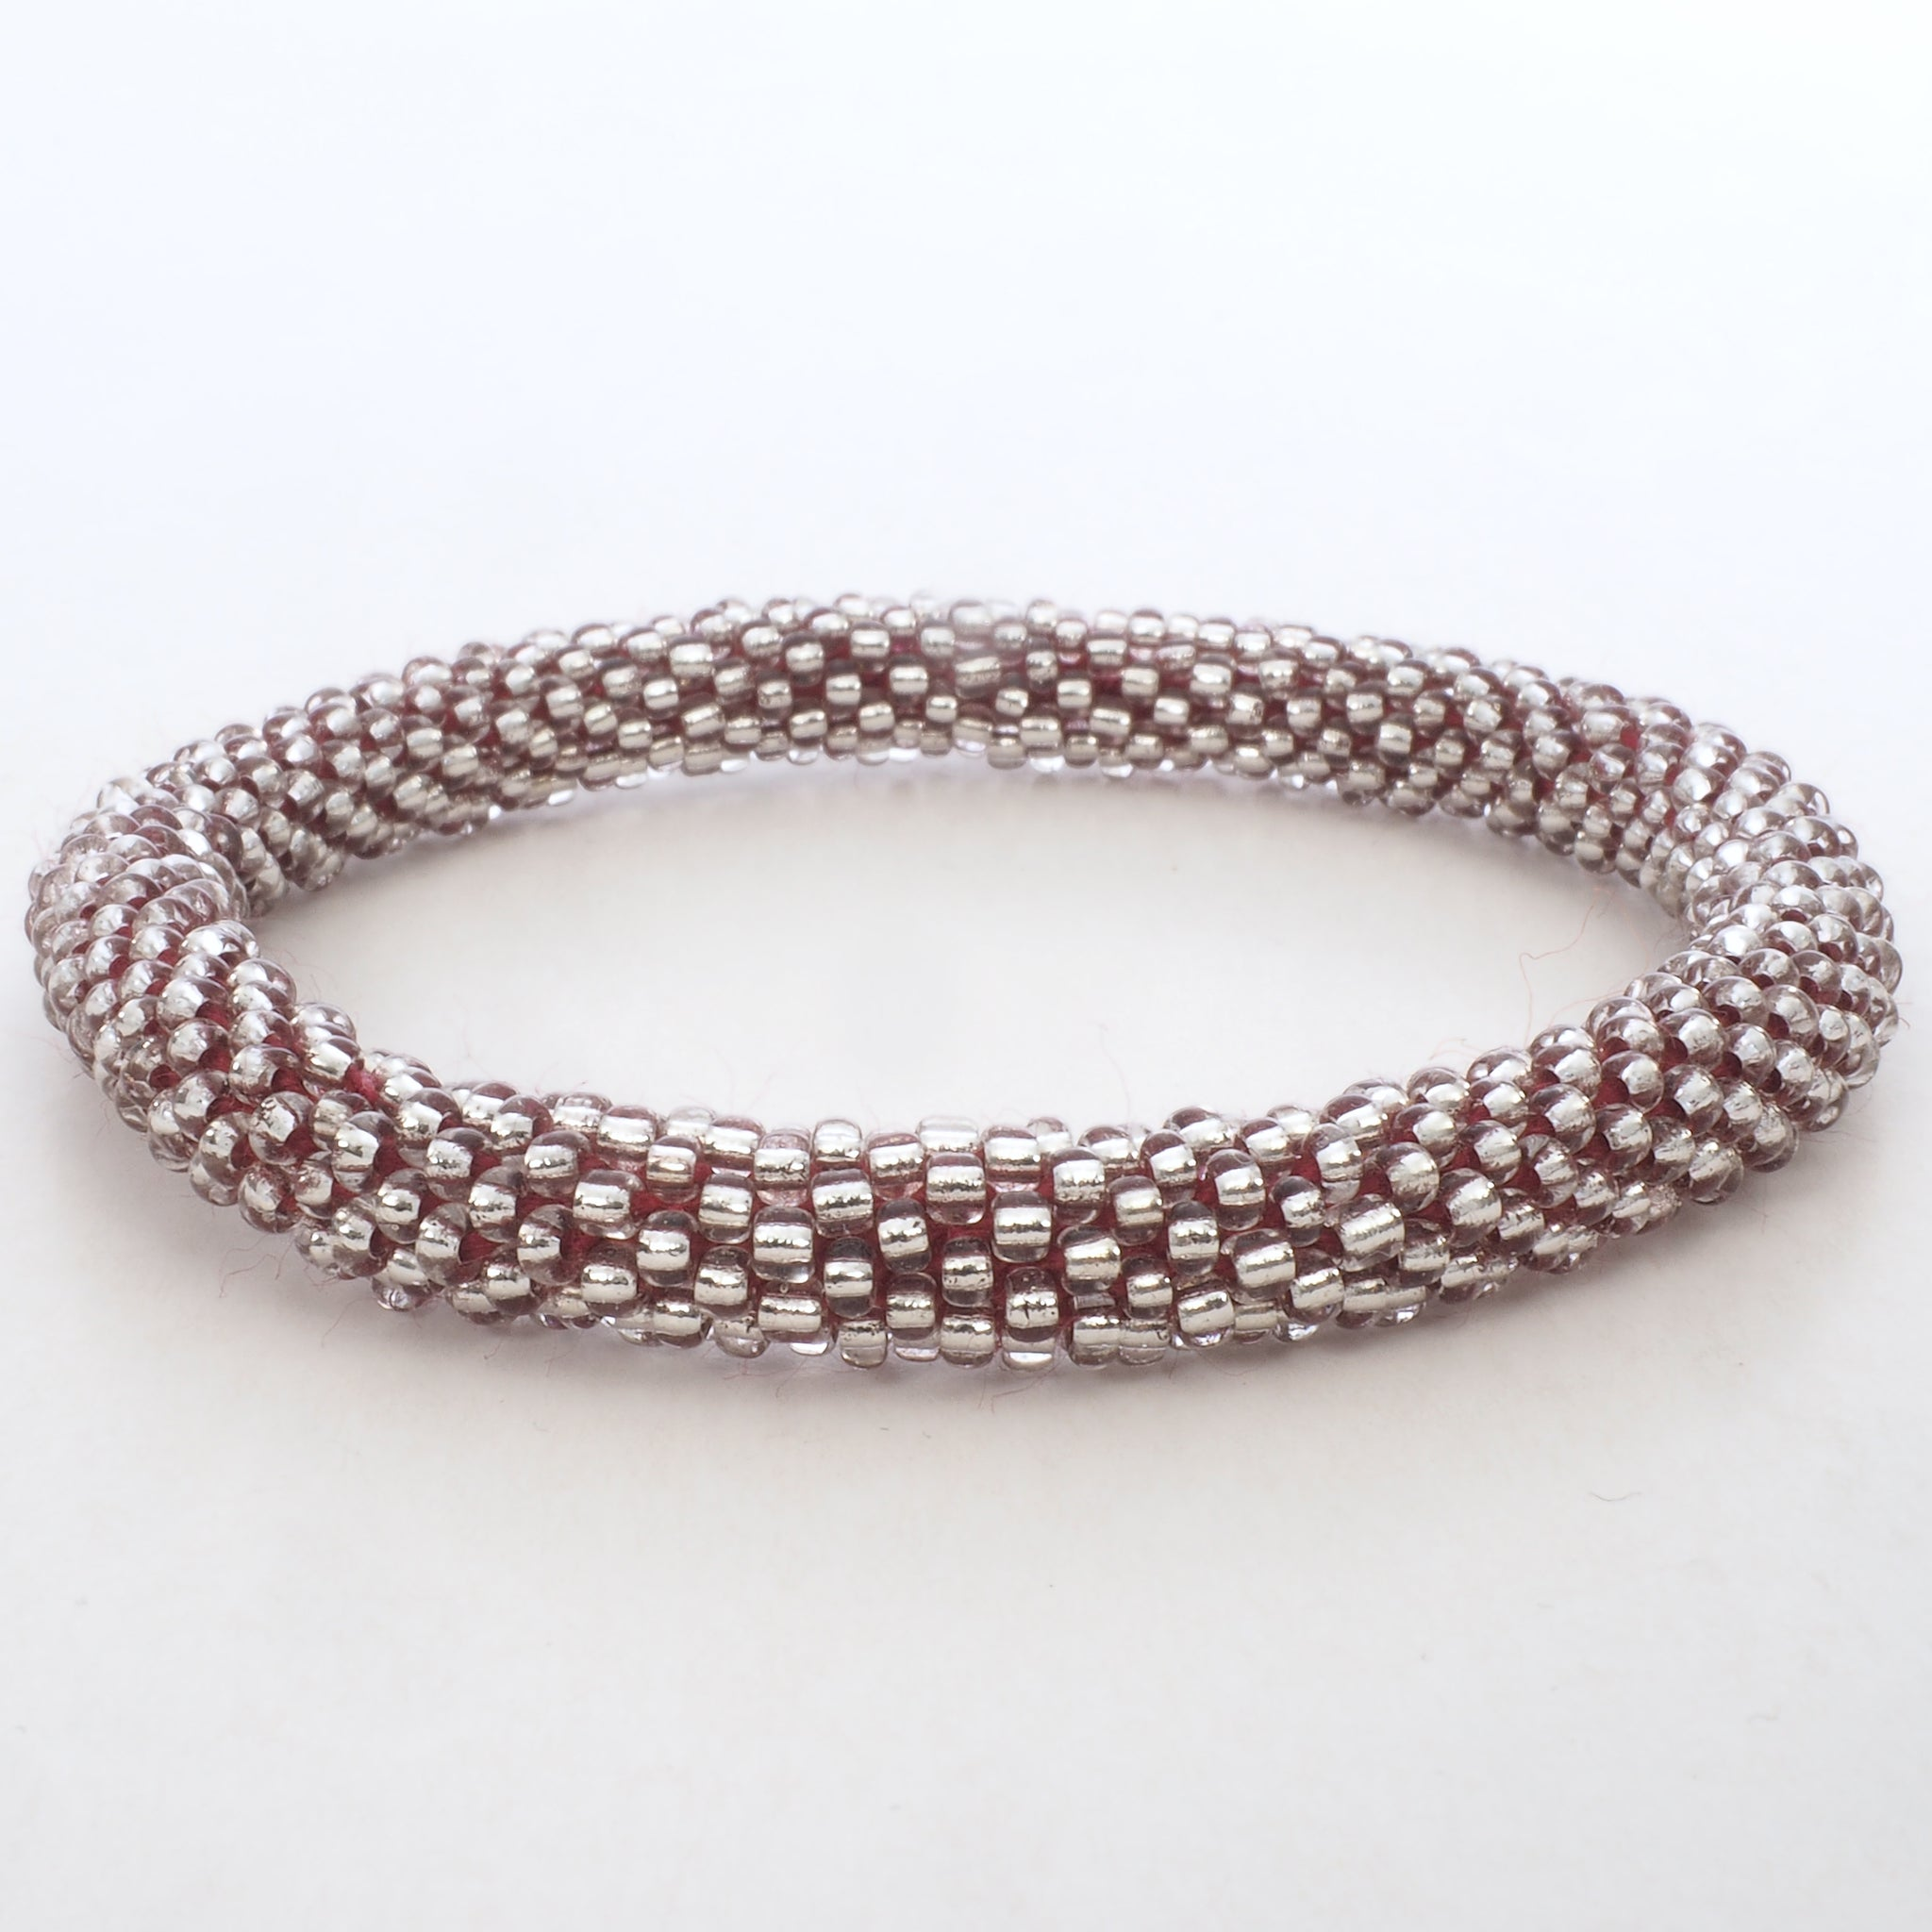 Beaded Bracelet - Silver & Pink Thread